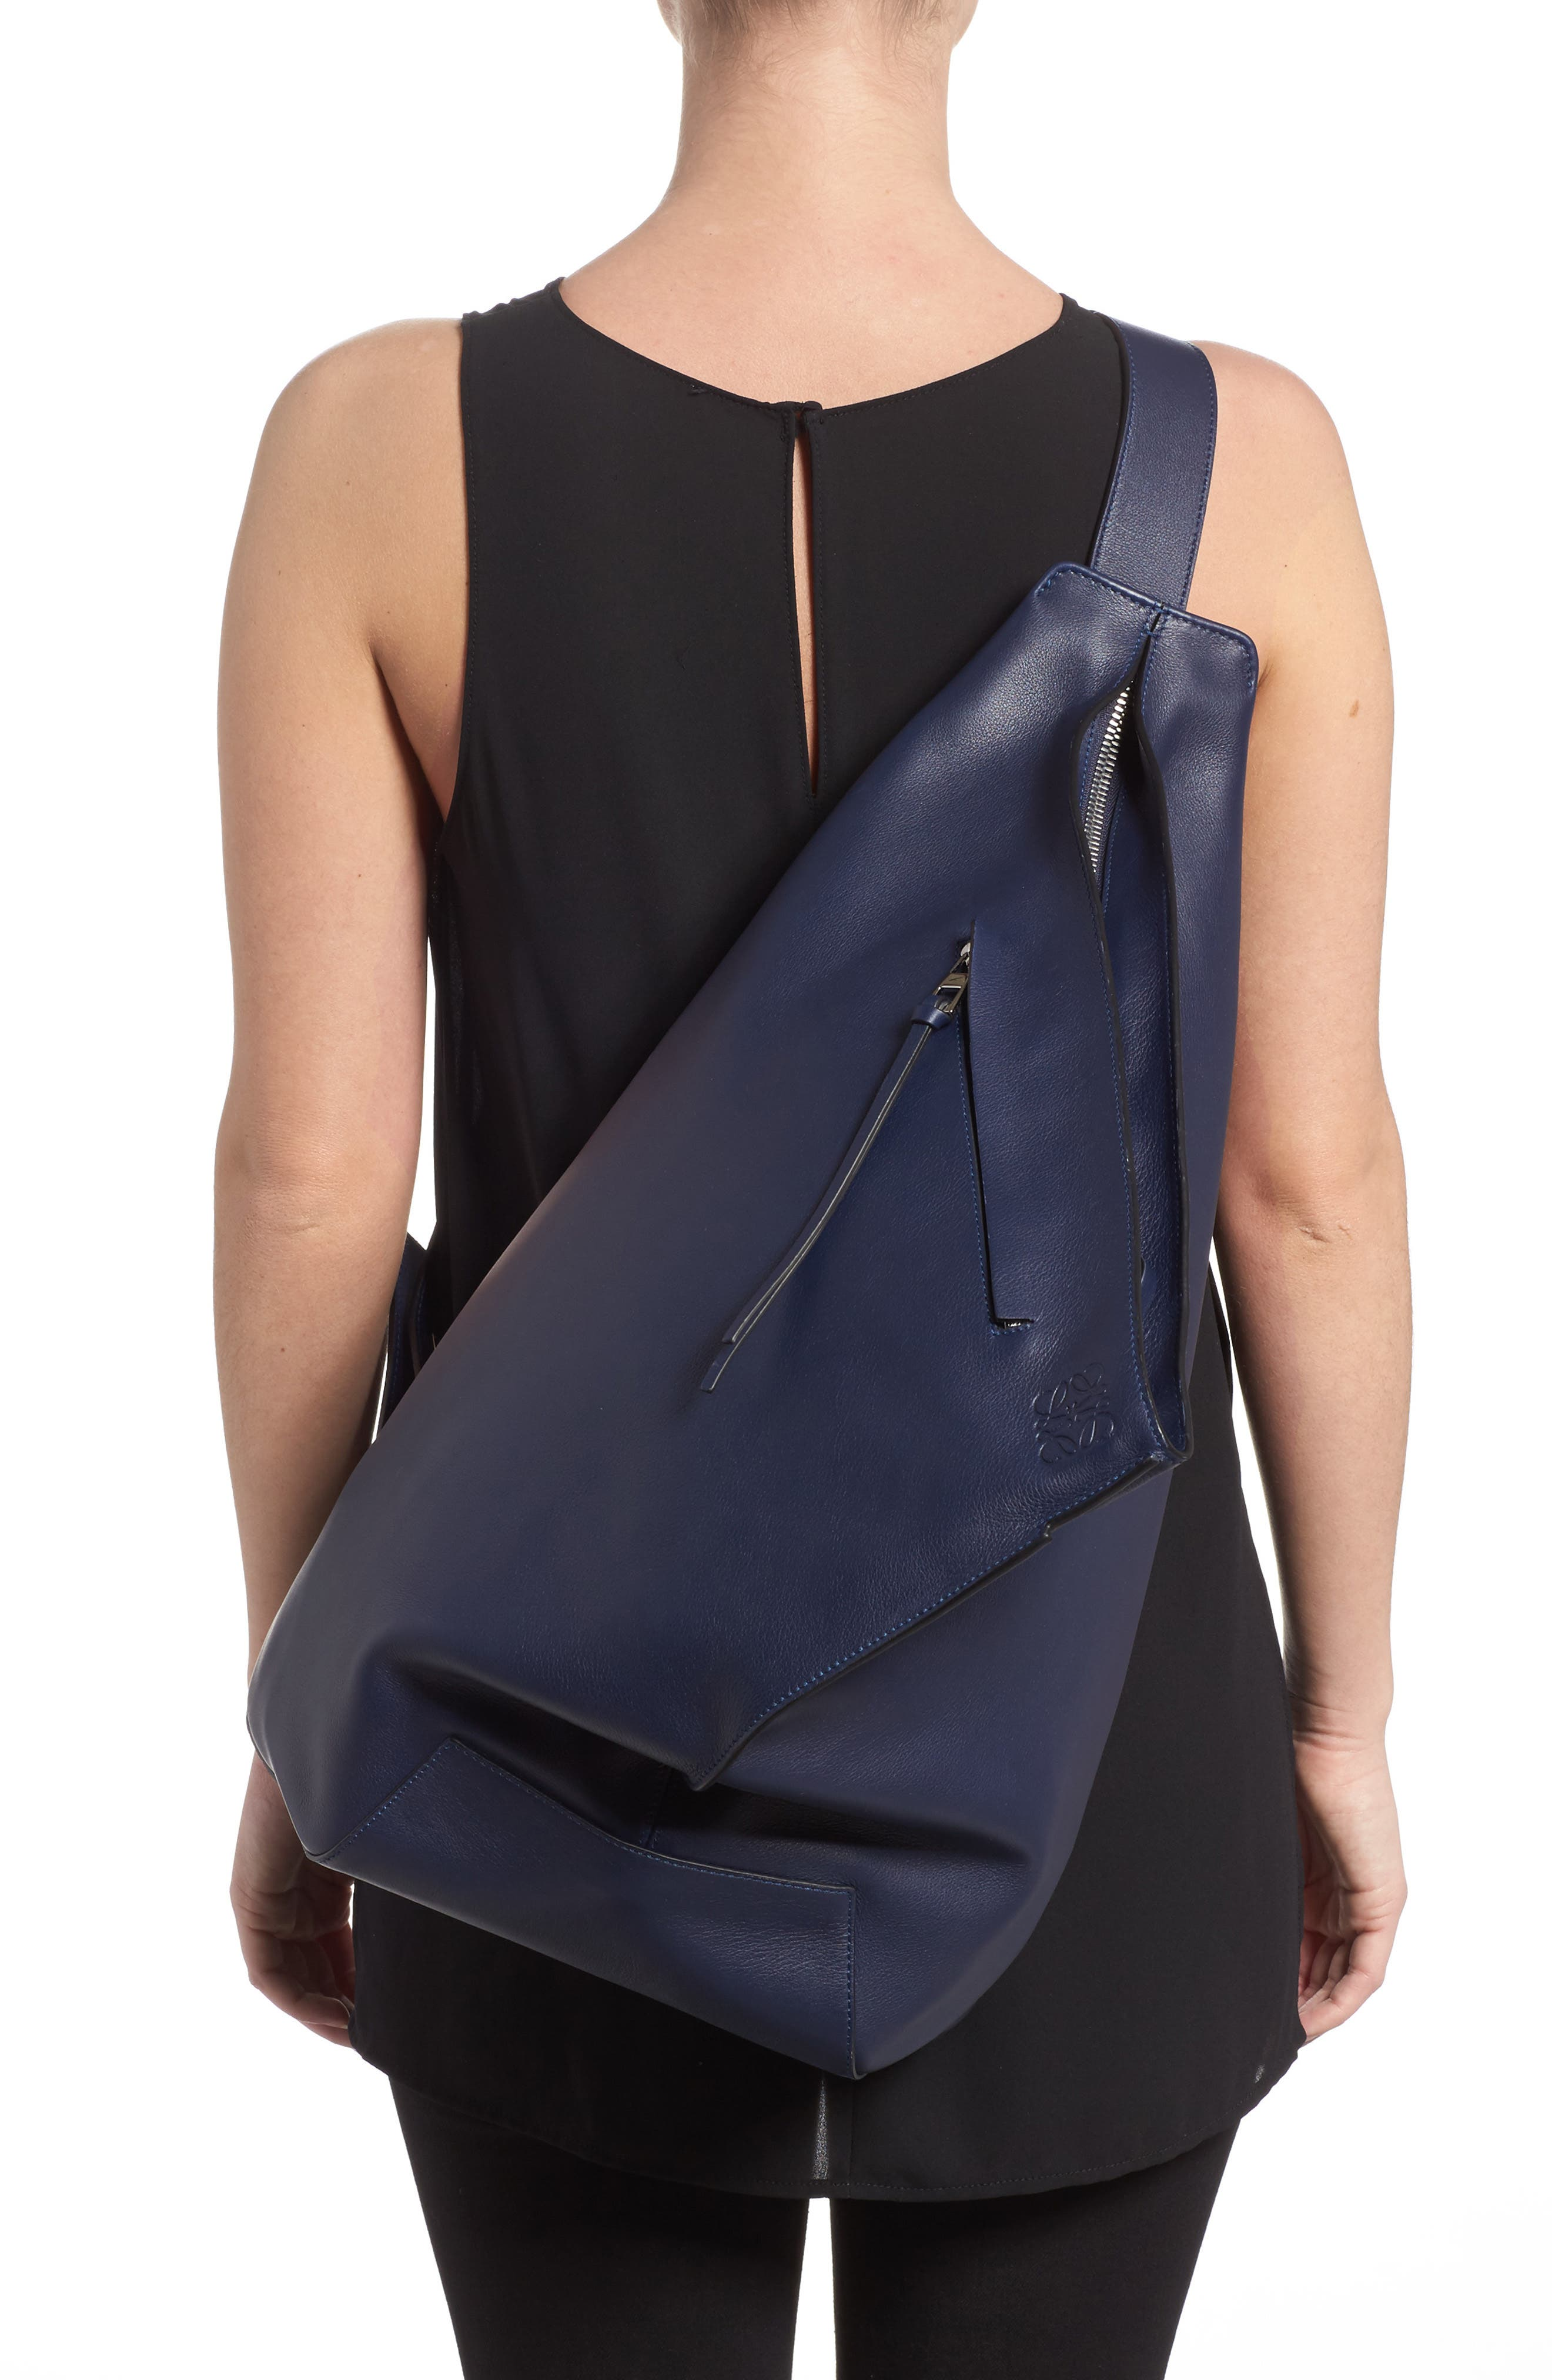 Anton Leather Sling Pack,                             Alternate thumbnail 2, color,                             Navy Blue